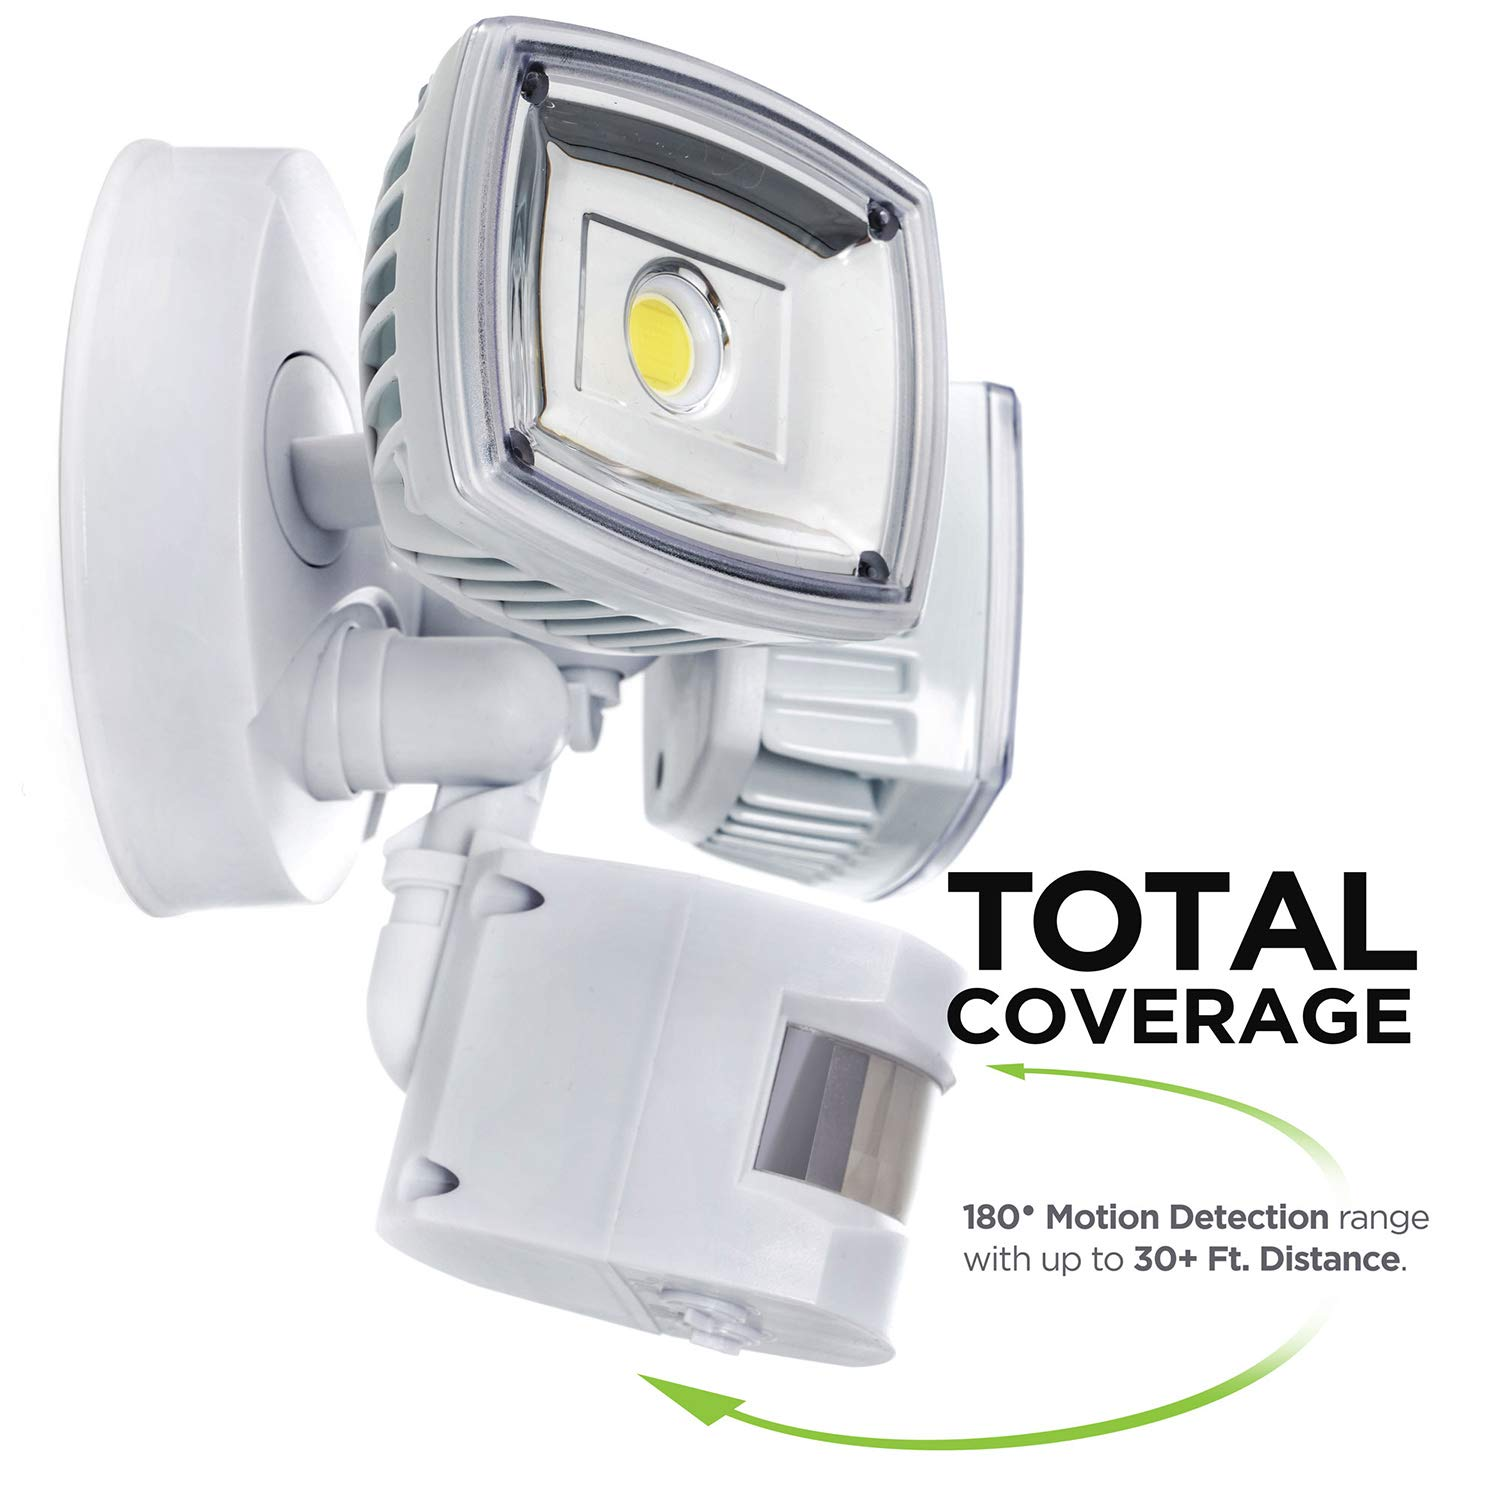 Home Zone ES00730U Security LED Motion Sensor Flood Lights, Outdoor Weatherproof Ultra Bright 5000K, White by Home Zone (Image #2)